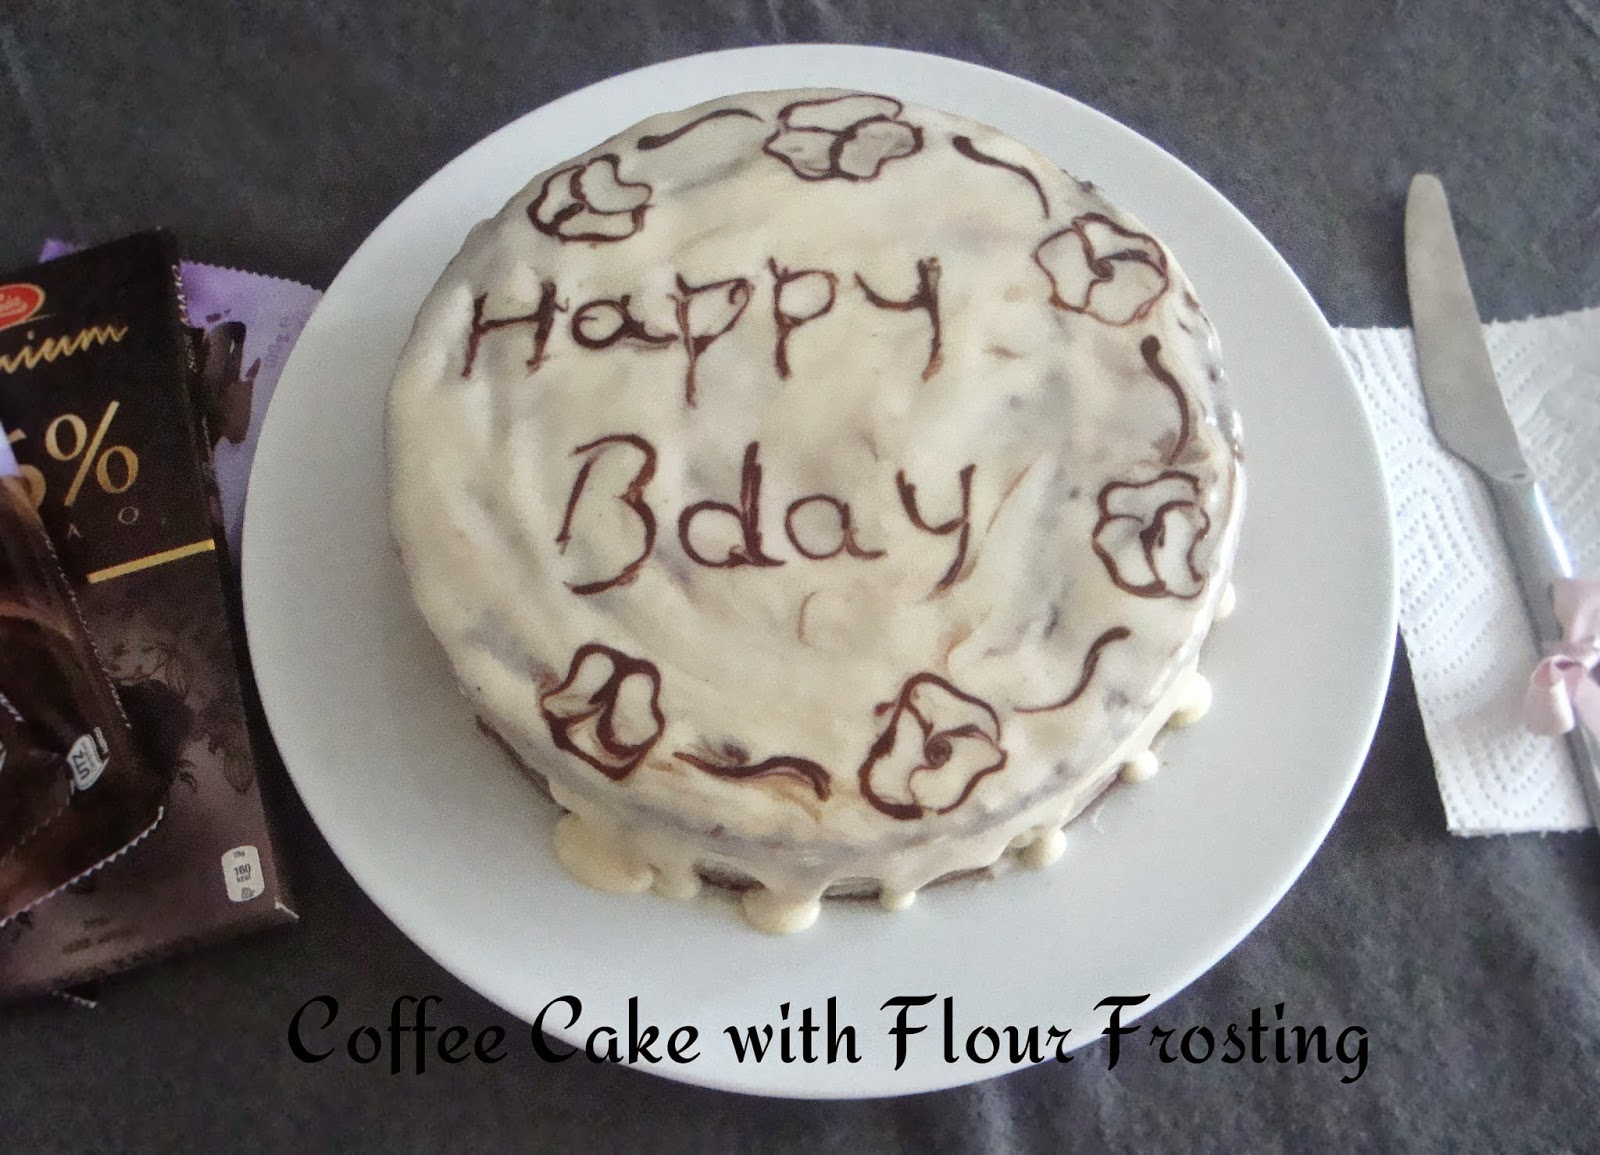 Cake Icing Recipes In Marathi: Poorni's Cookbook: Coffee Cake With Flour Frosting